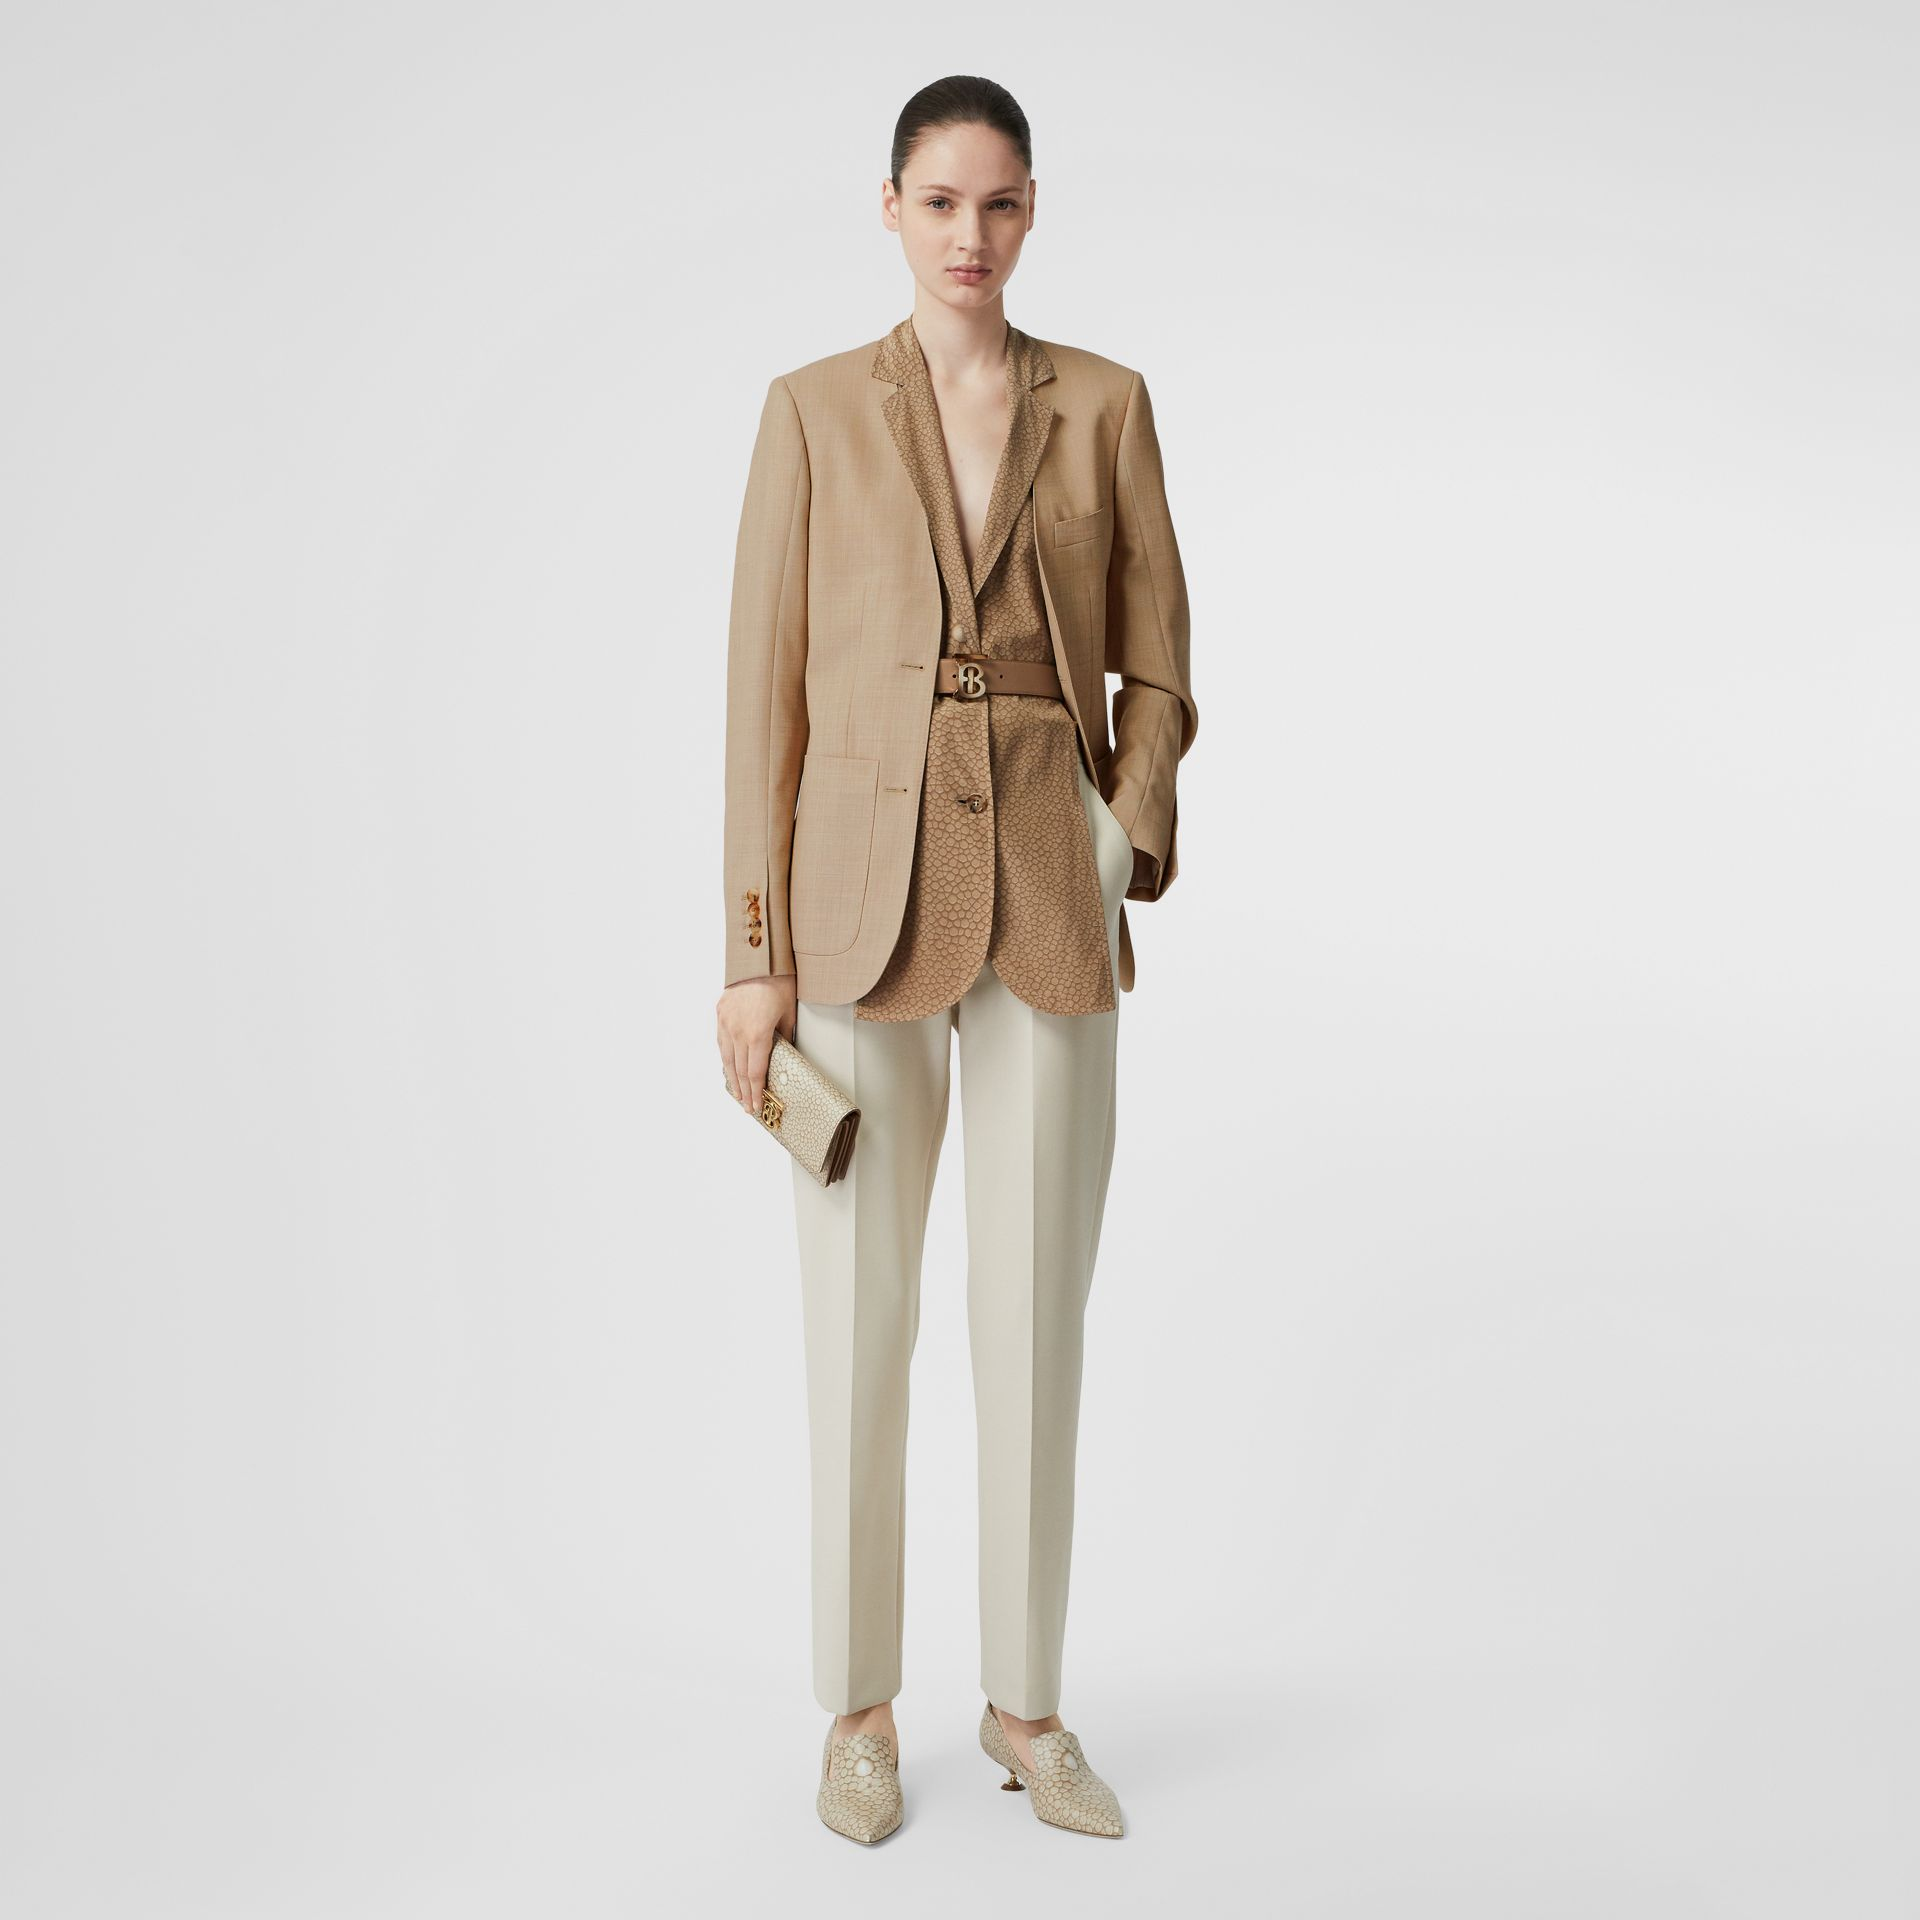 Pantalon tailleur droit en laine stretch (Ocre Pâle) - Femme | Burberry - photo de la galerie 0